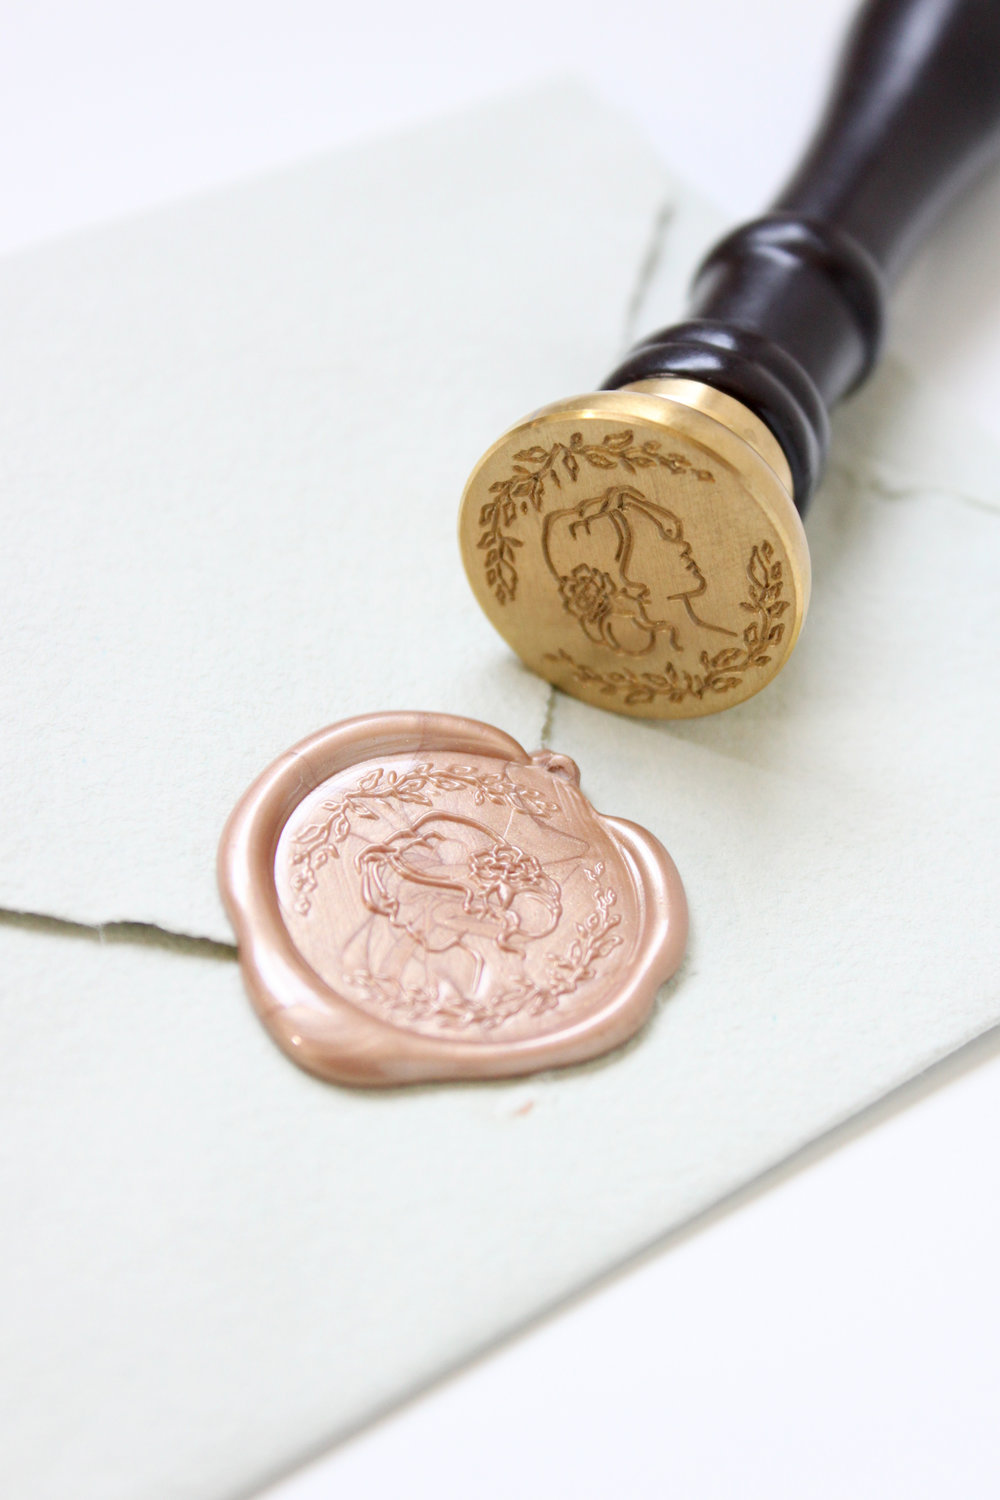 My favorite wax seal designs - check out 5 of my favorite wax seal designs by OTHER industry professionals! The perfect design for your wedding stationery is just a click away—read all about it: www.blusheddesign.com #waxseals #waxseal #weddingstationery